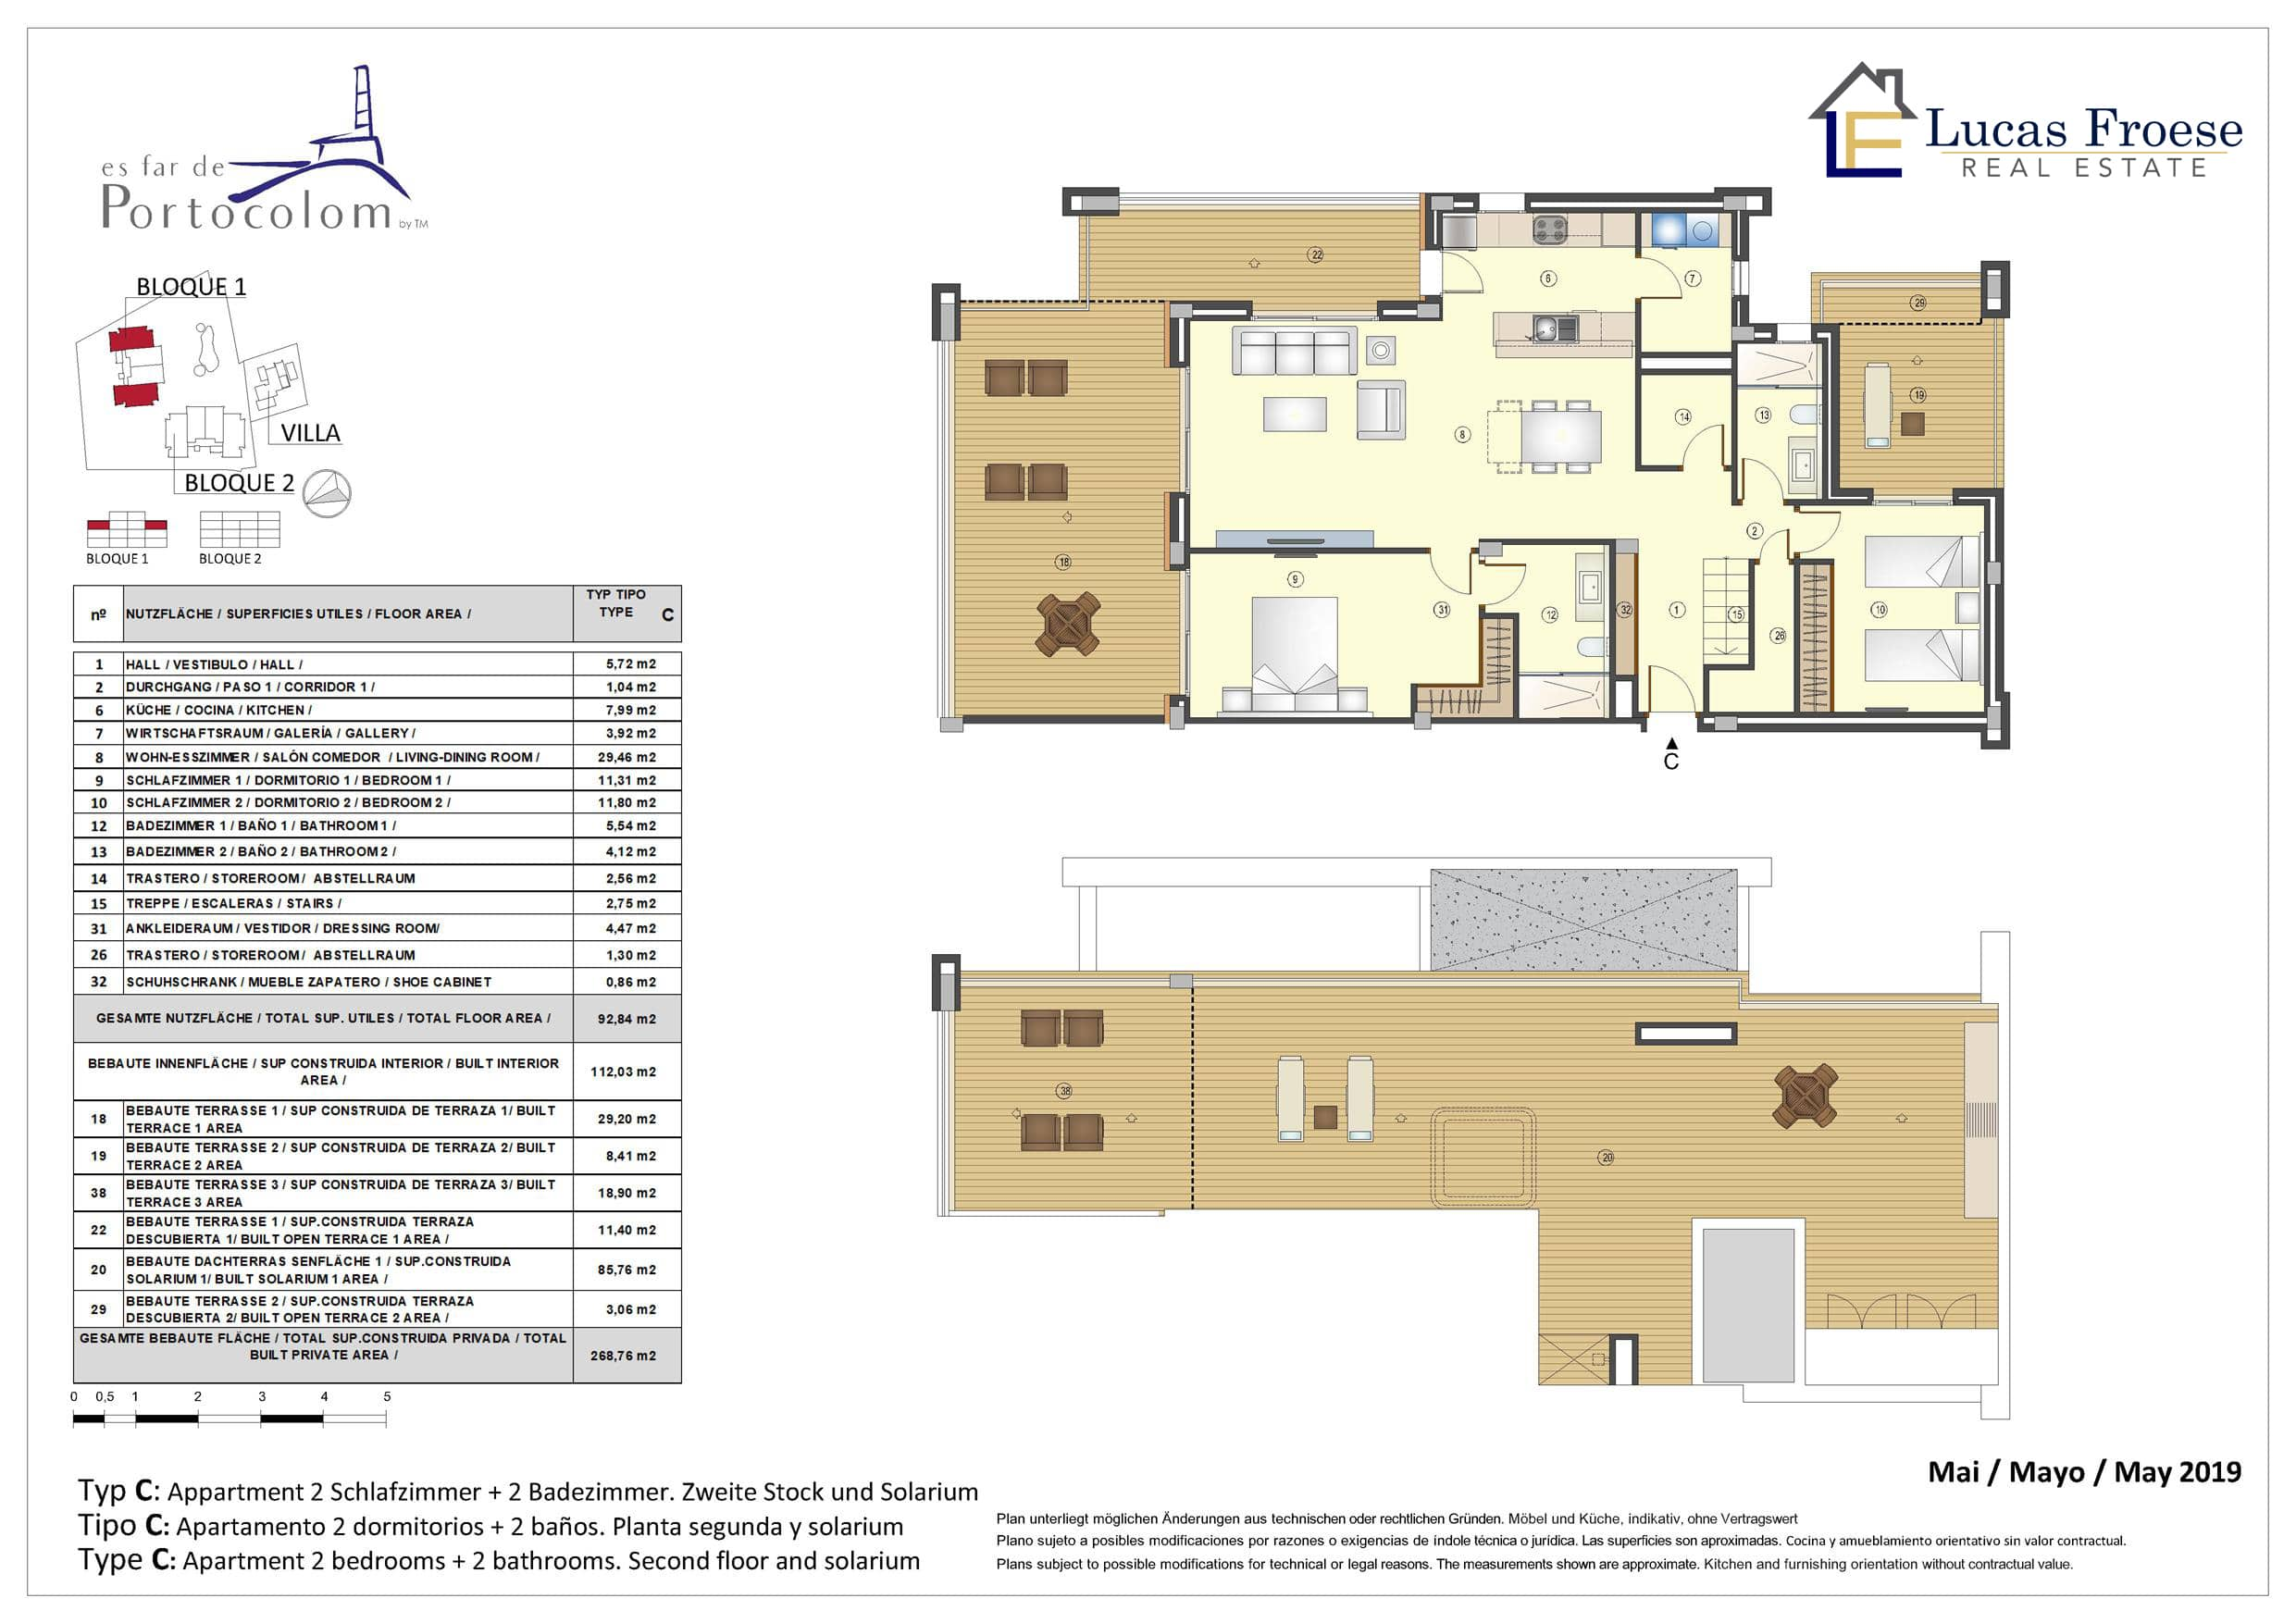 Badezimmer 6 M2 Apartments In Portocolom With Community Pool From 290 000